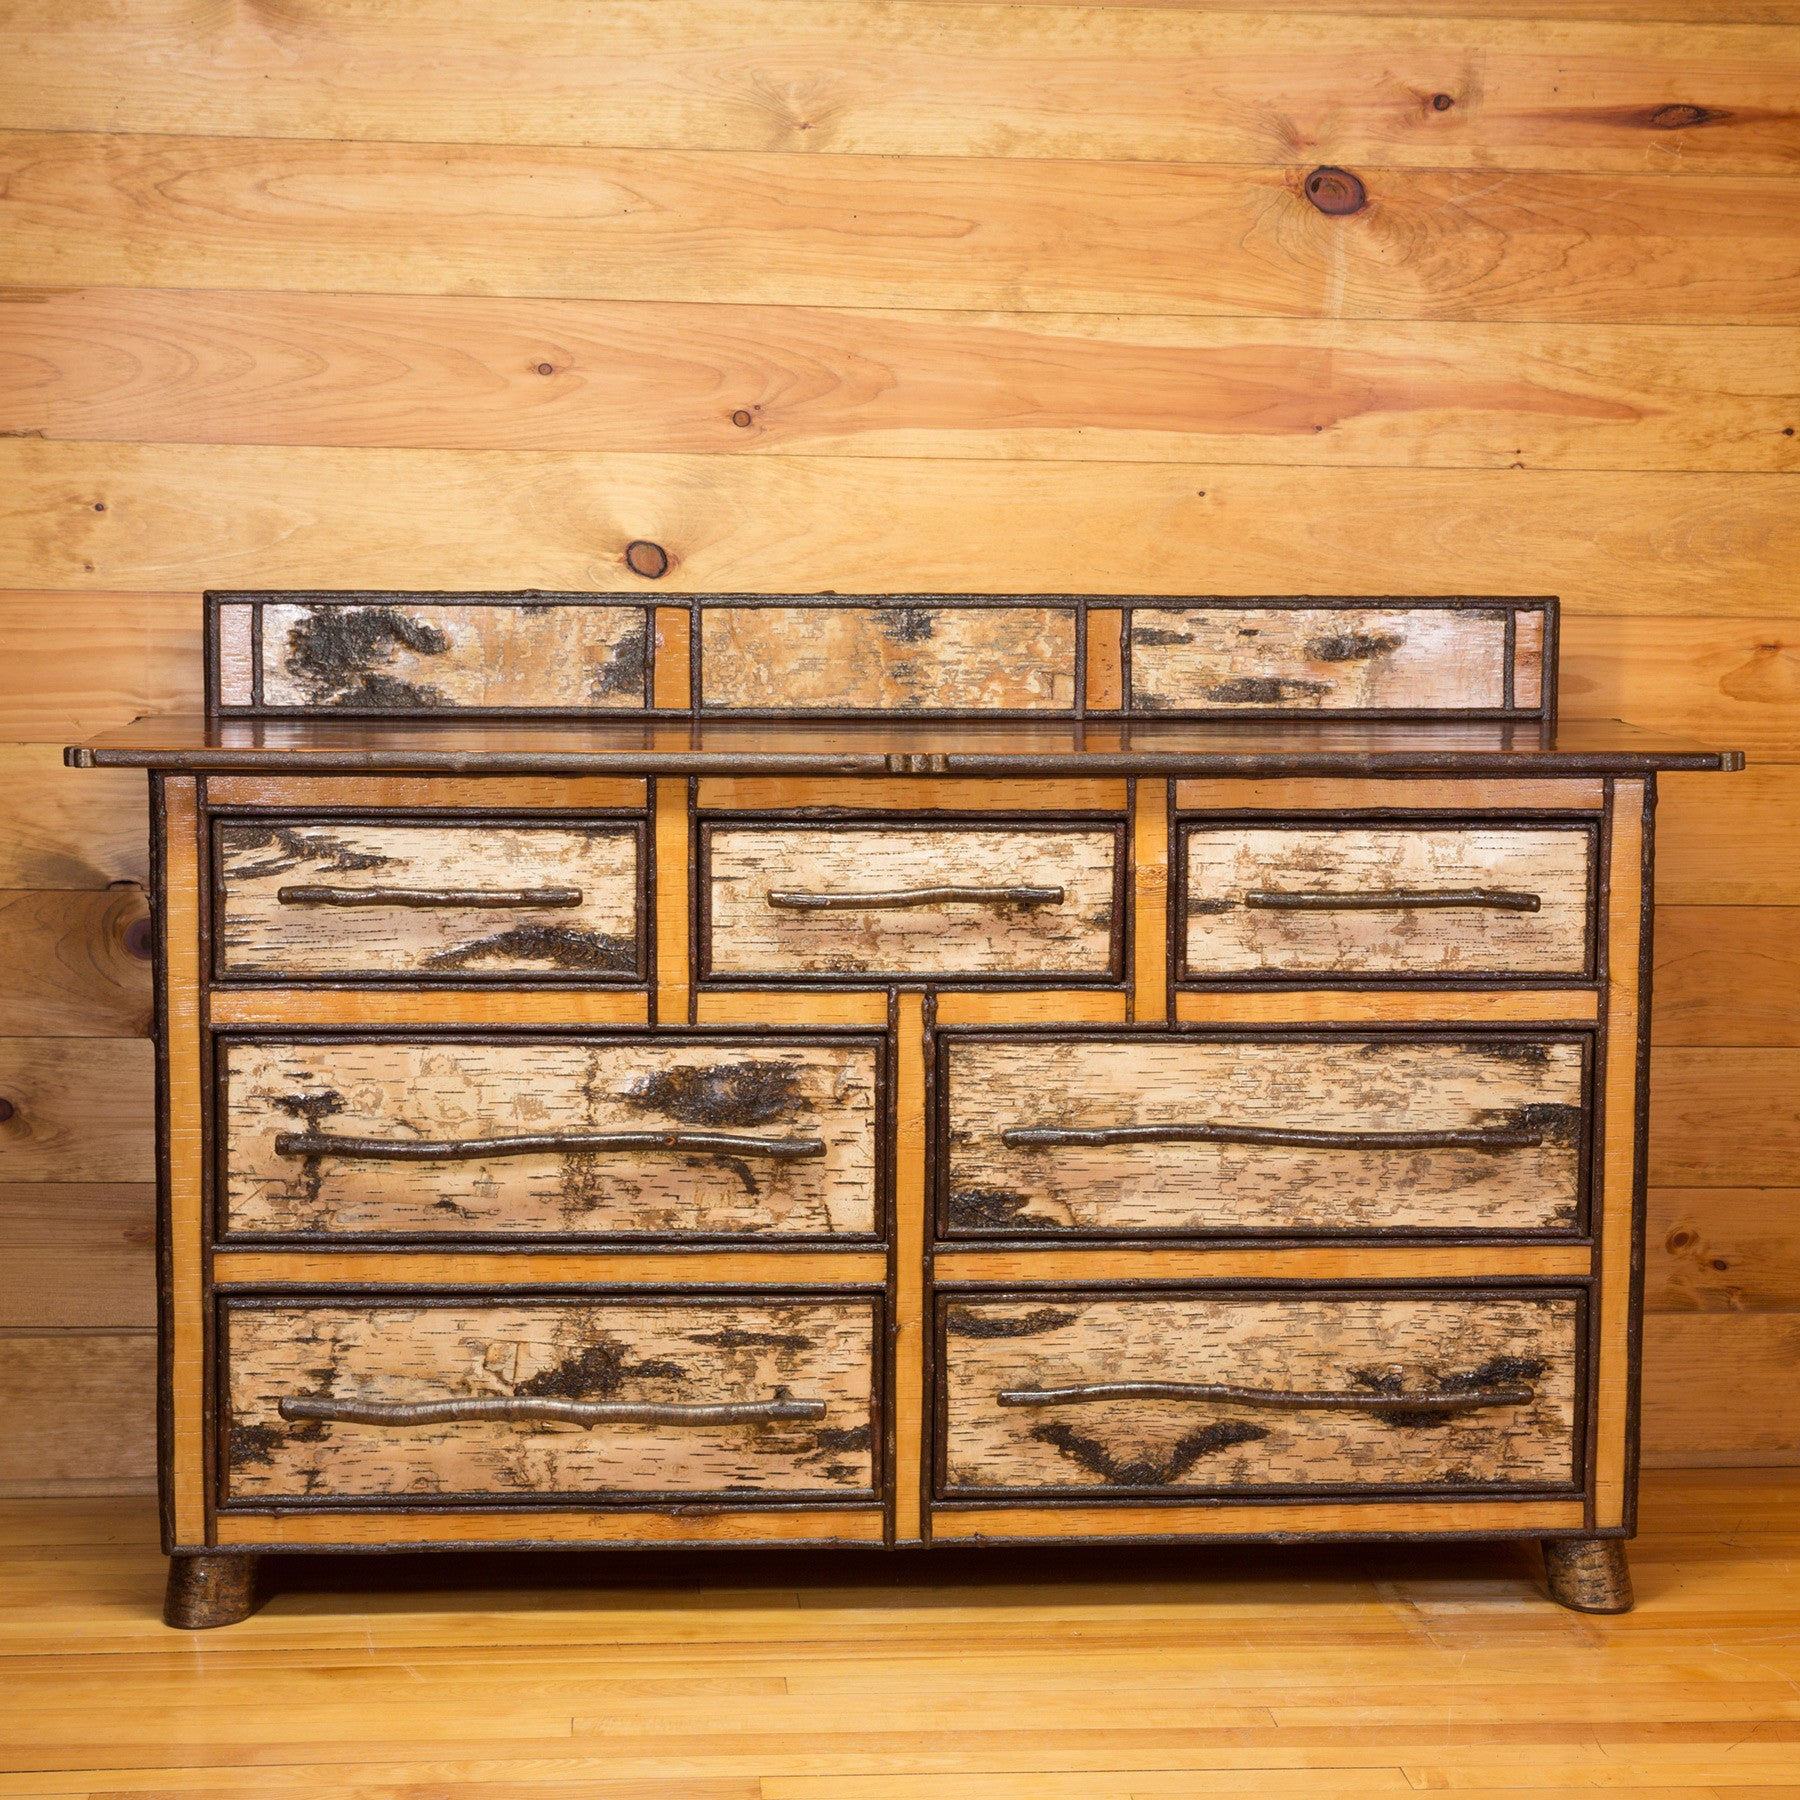 pinterest does homegoods dressers online headboards bd maxx locations of tj market decor furniture ross size decorating ikea store bedroom world full home dresser ideas have goods